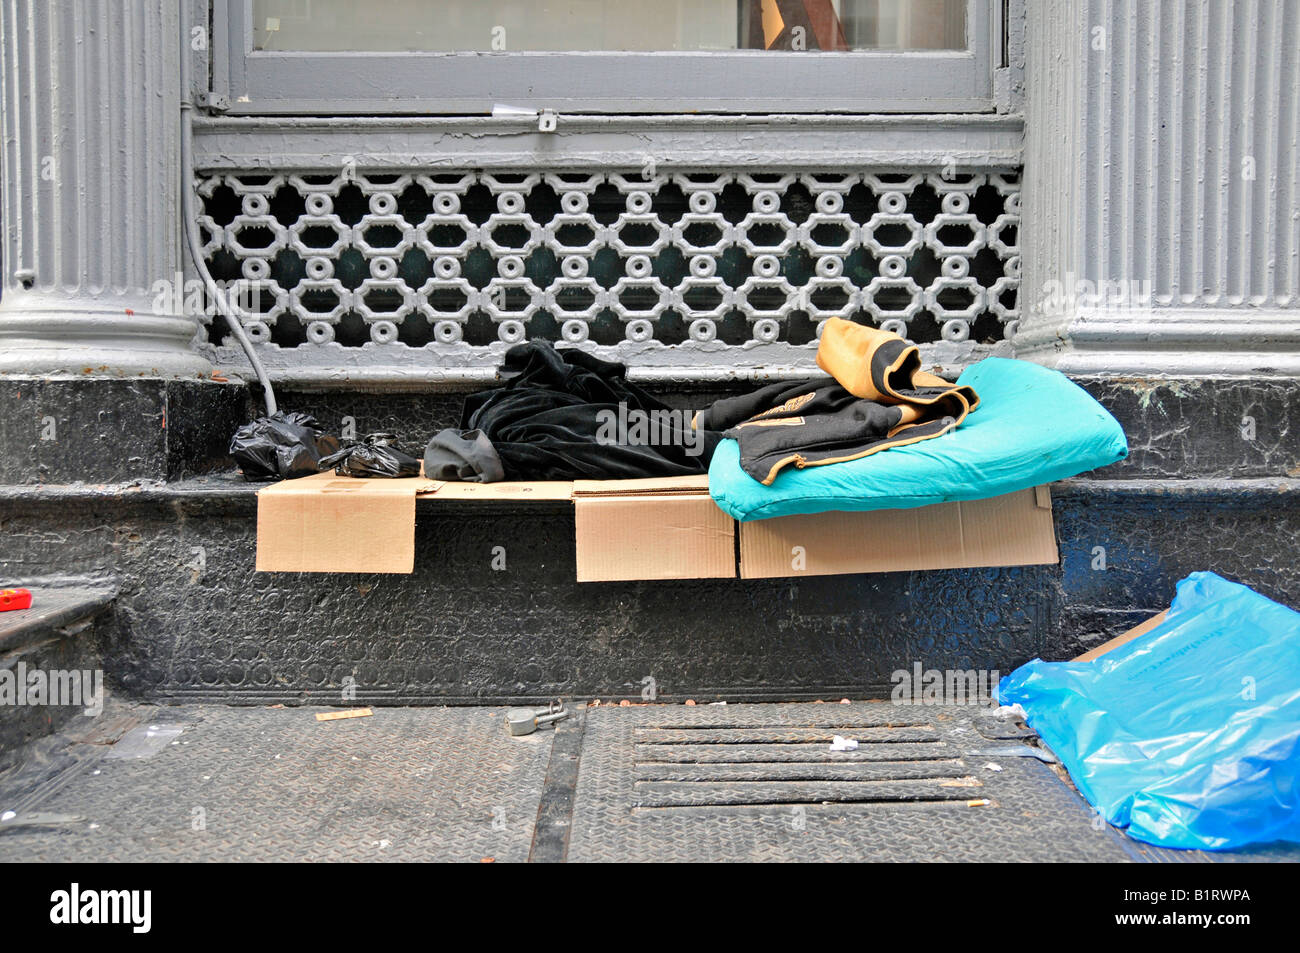 Sleeping place of a homeless person, Financial District, Manhattan, New York City, USA - Stock Image